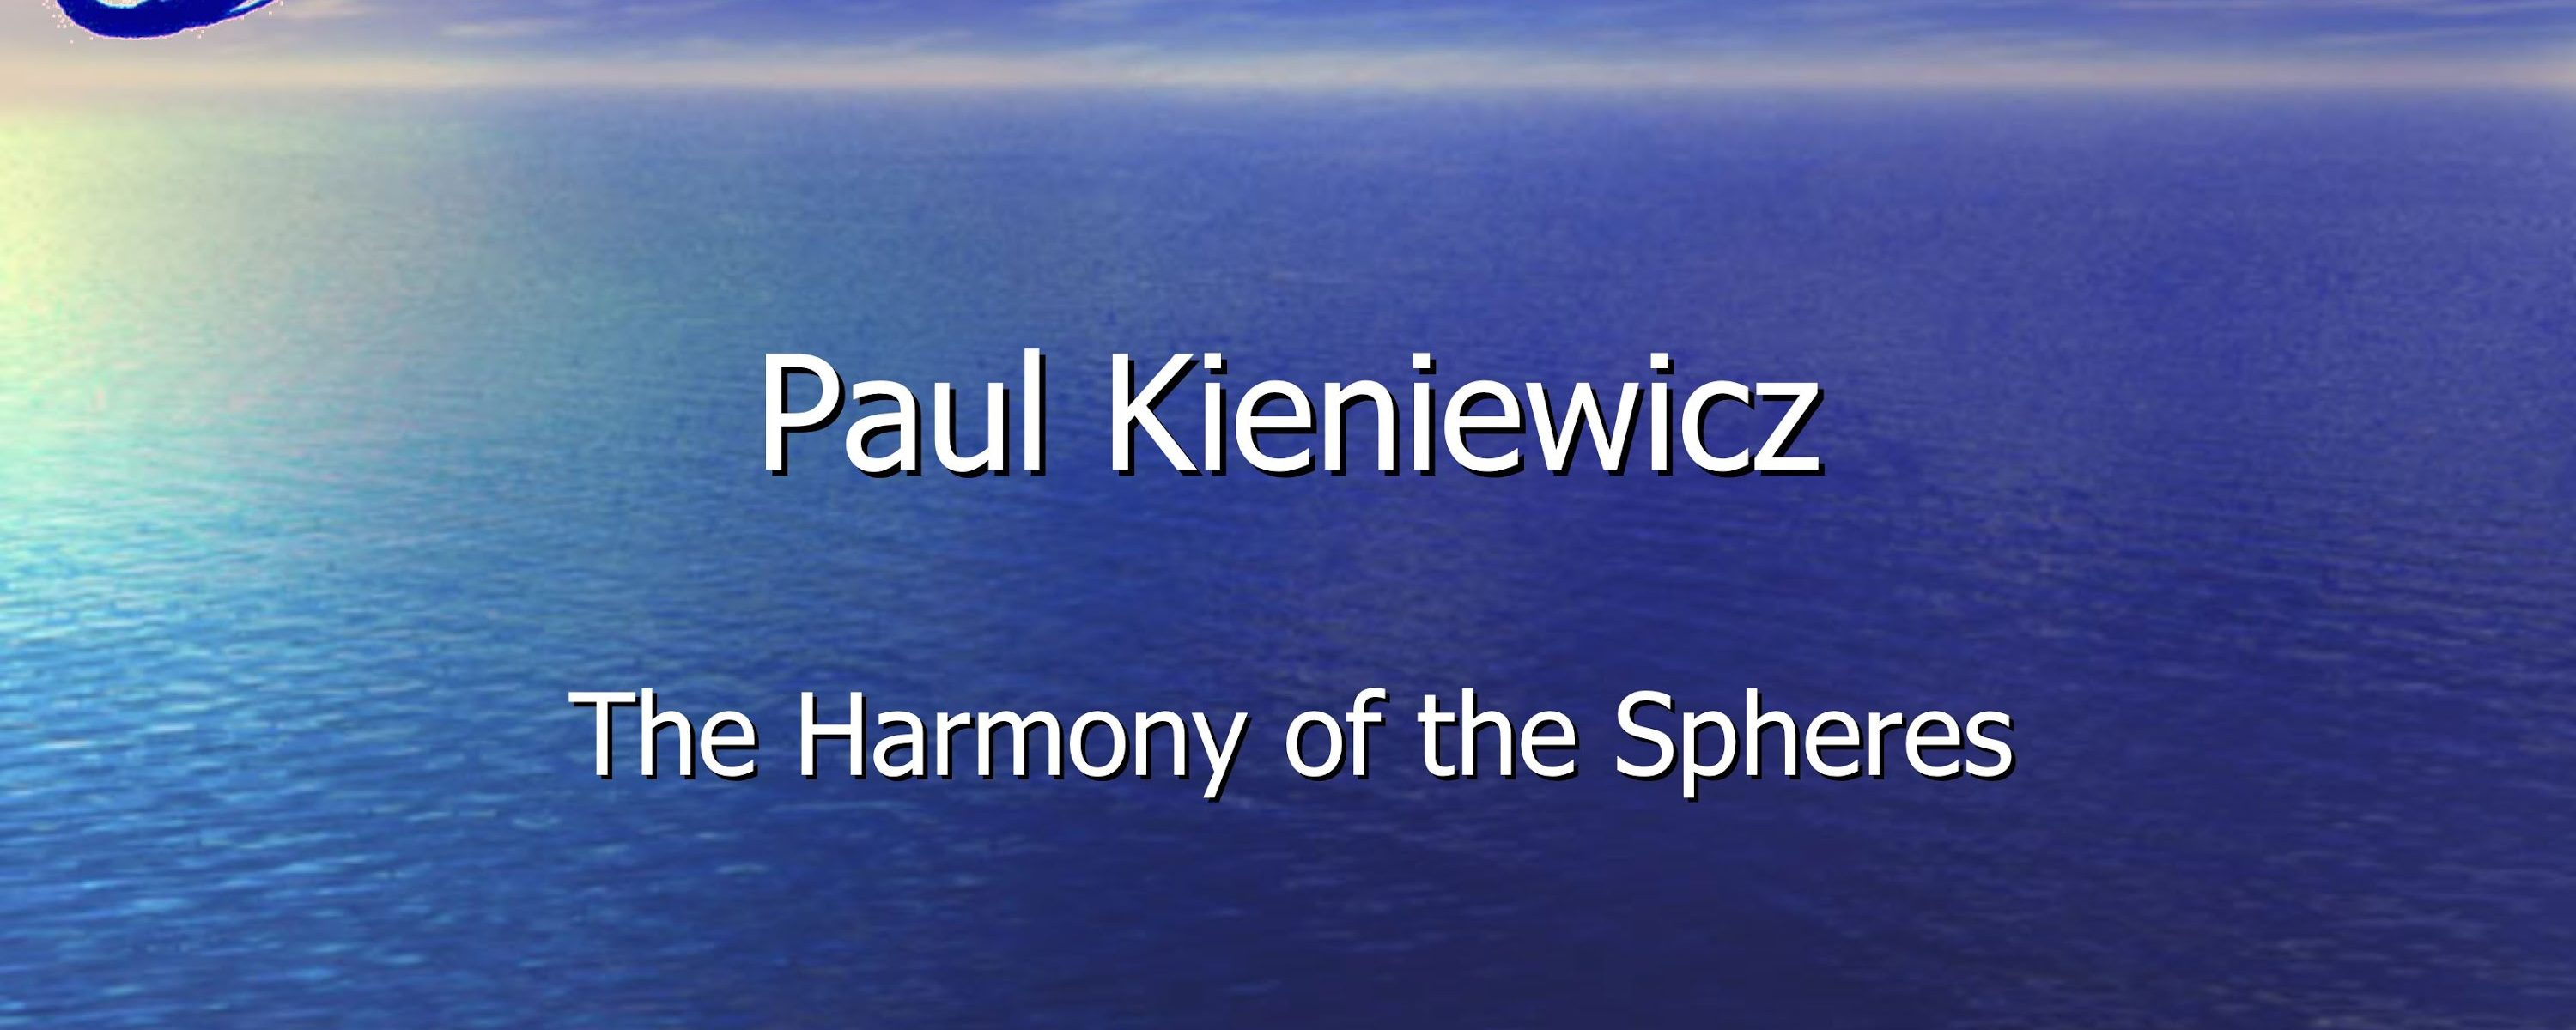 The Harmony of the Spheres – Paul Kieniewicz